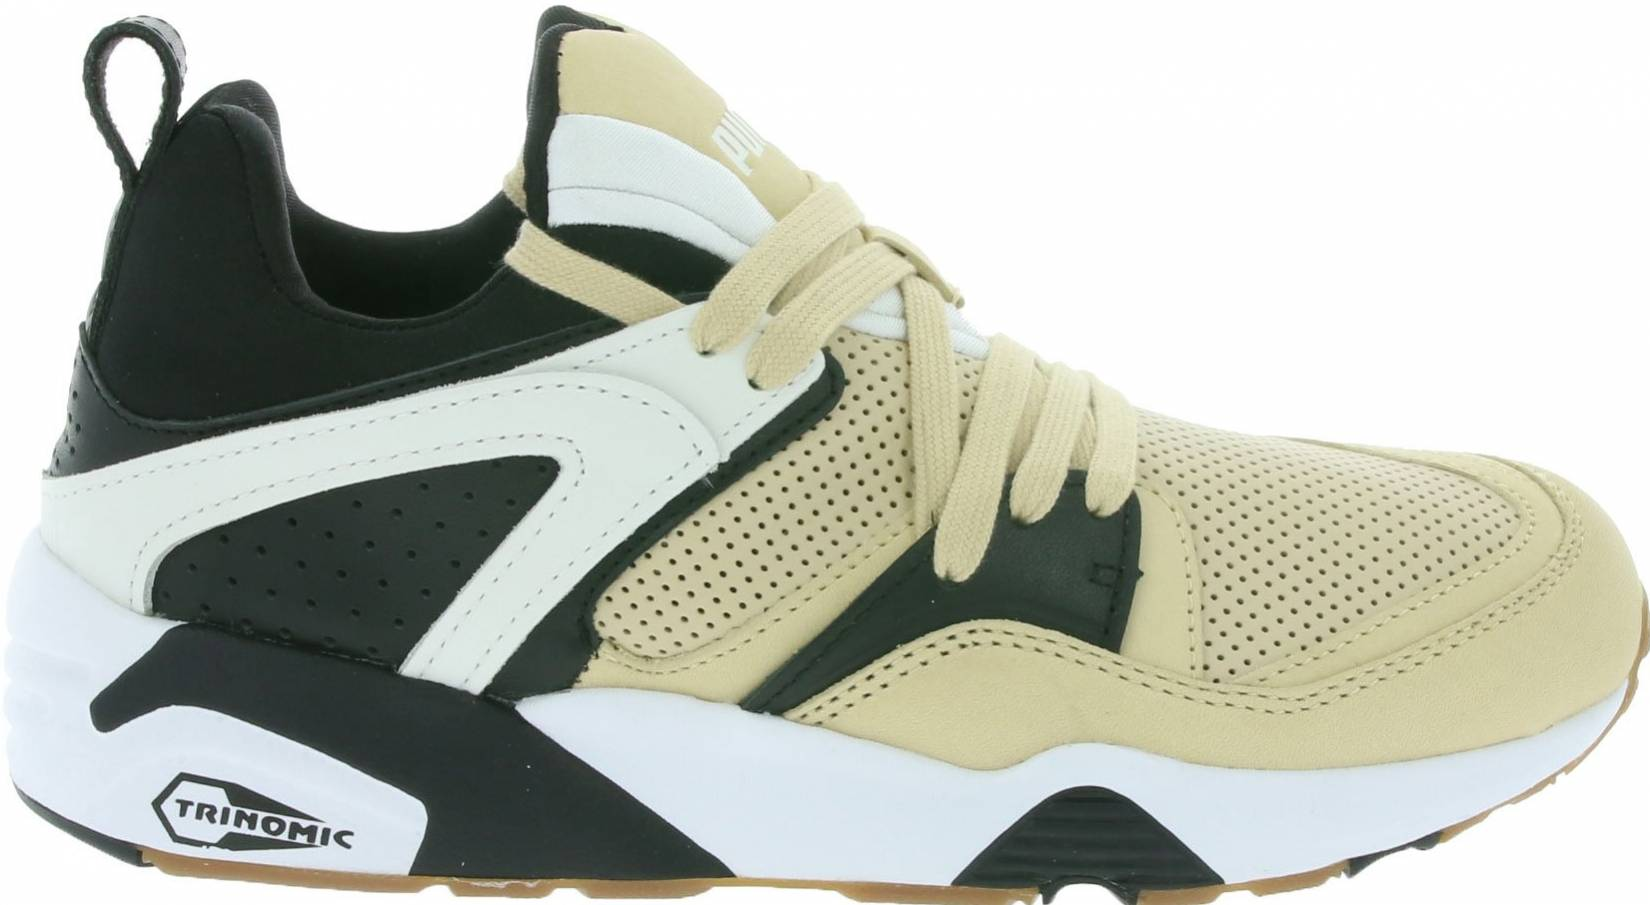 Puma Blaze of Glory sneakers in white red (only $50)   RunRepeat